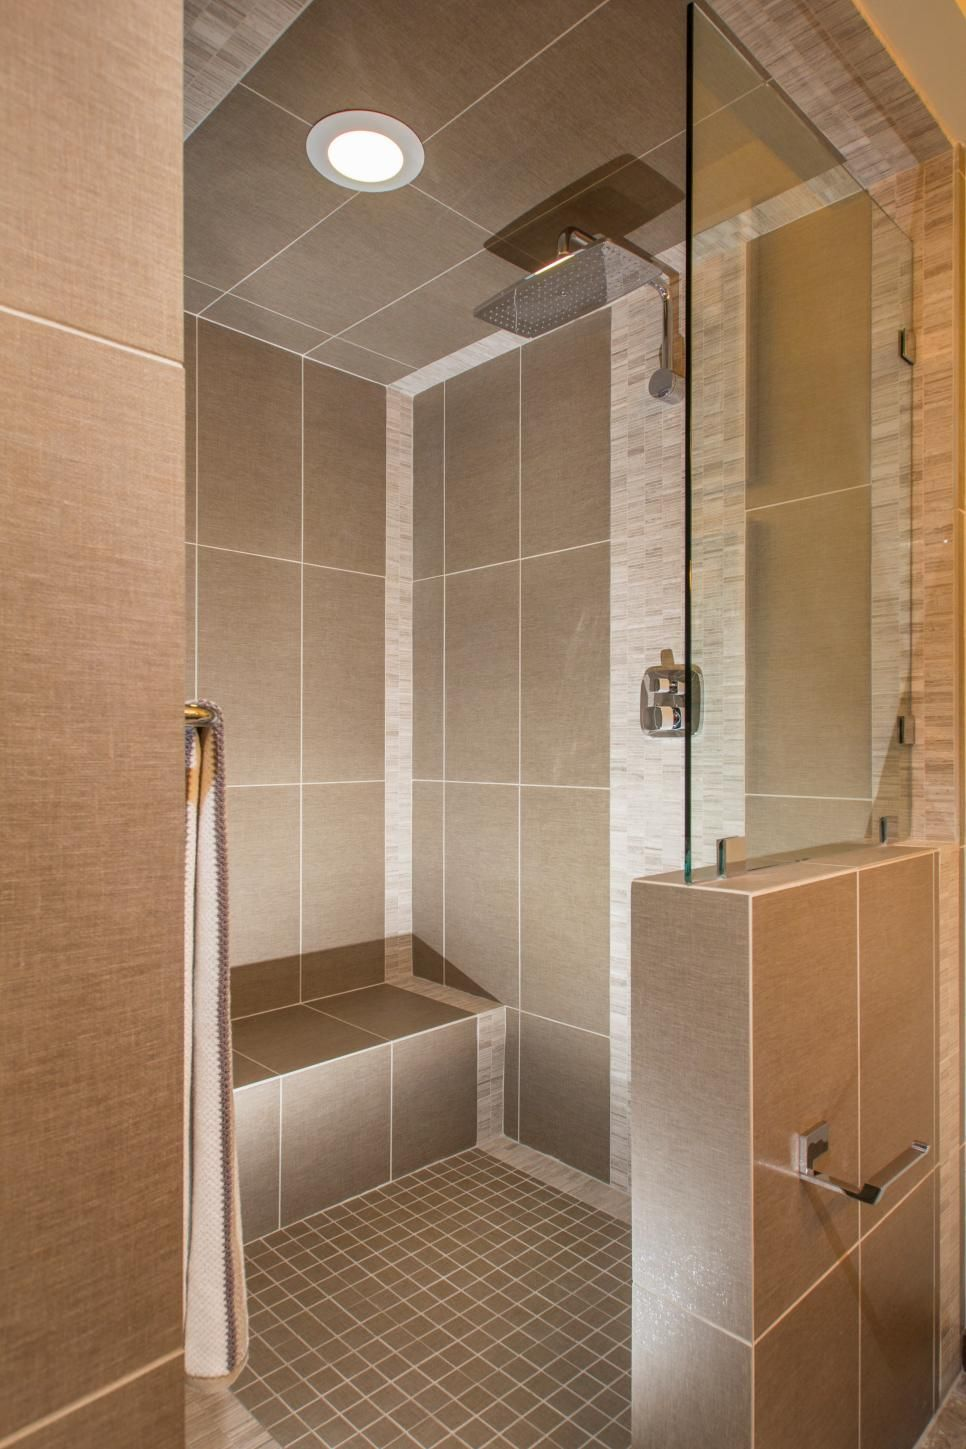 Large Textured Tiles Mix With Smaller Mosaic To Give This Walk In Shower A Geometric Kick Rainforest Head Adds Touch Of Luxury